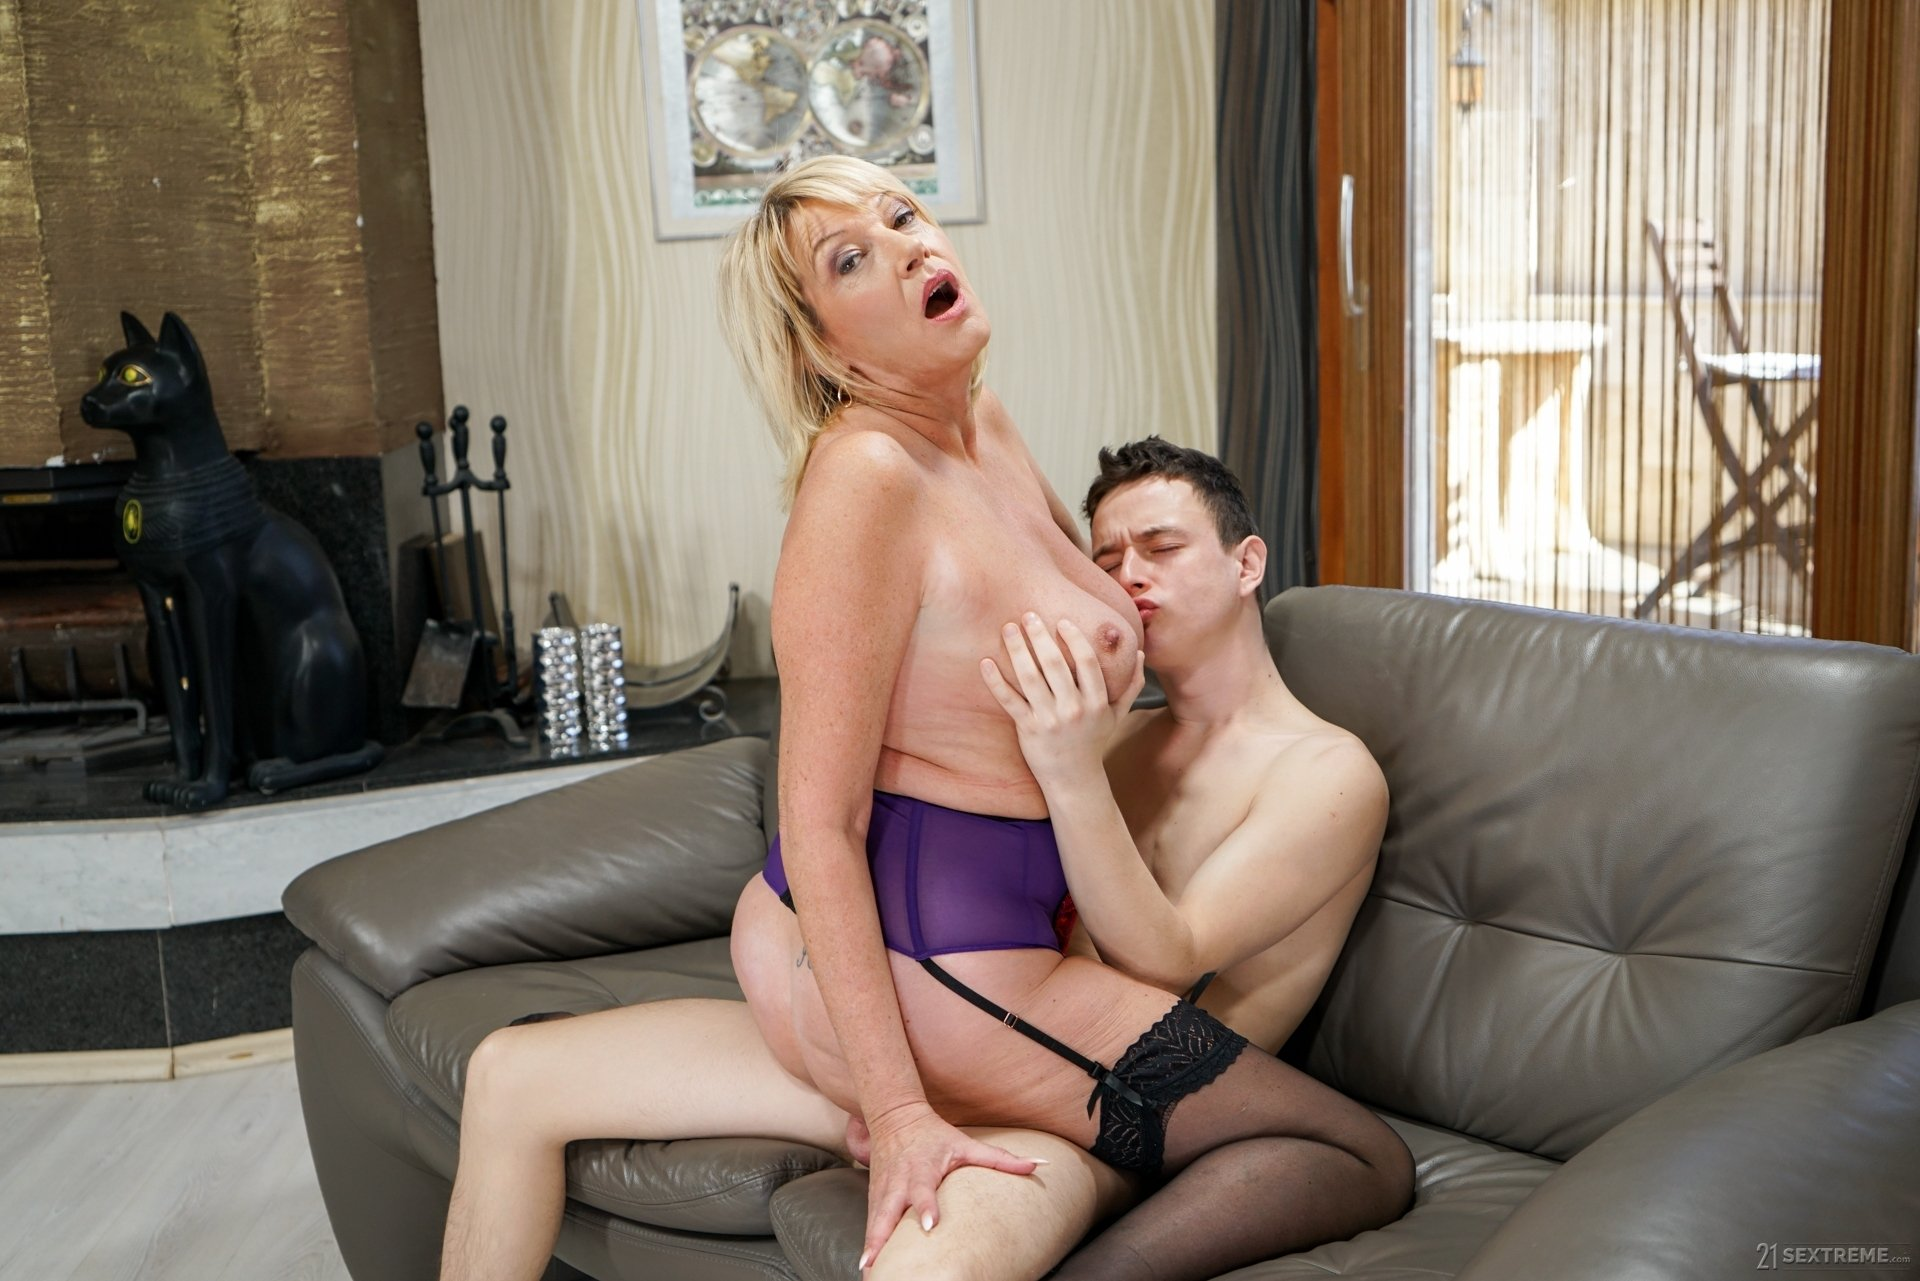 linda friday creampie